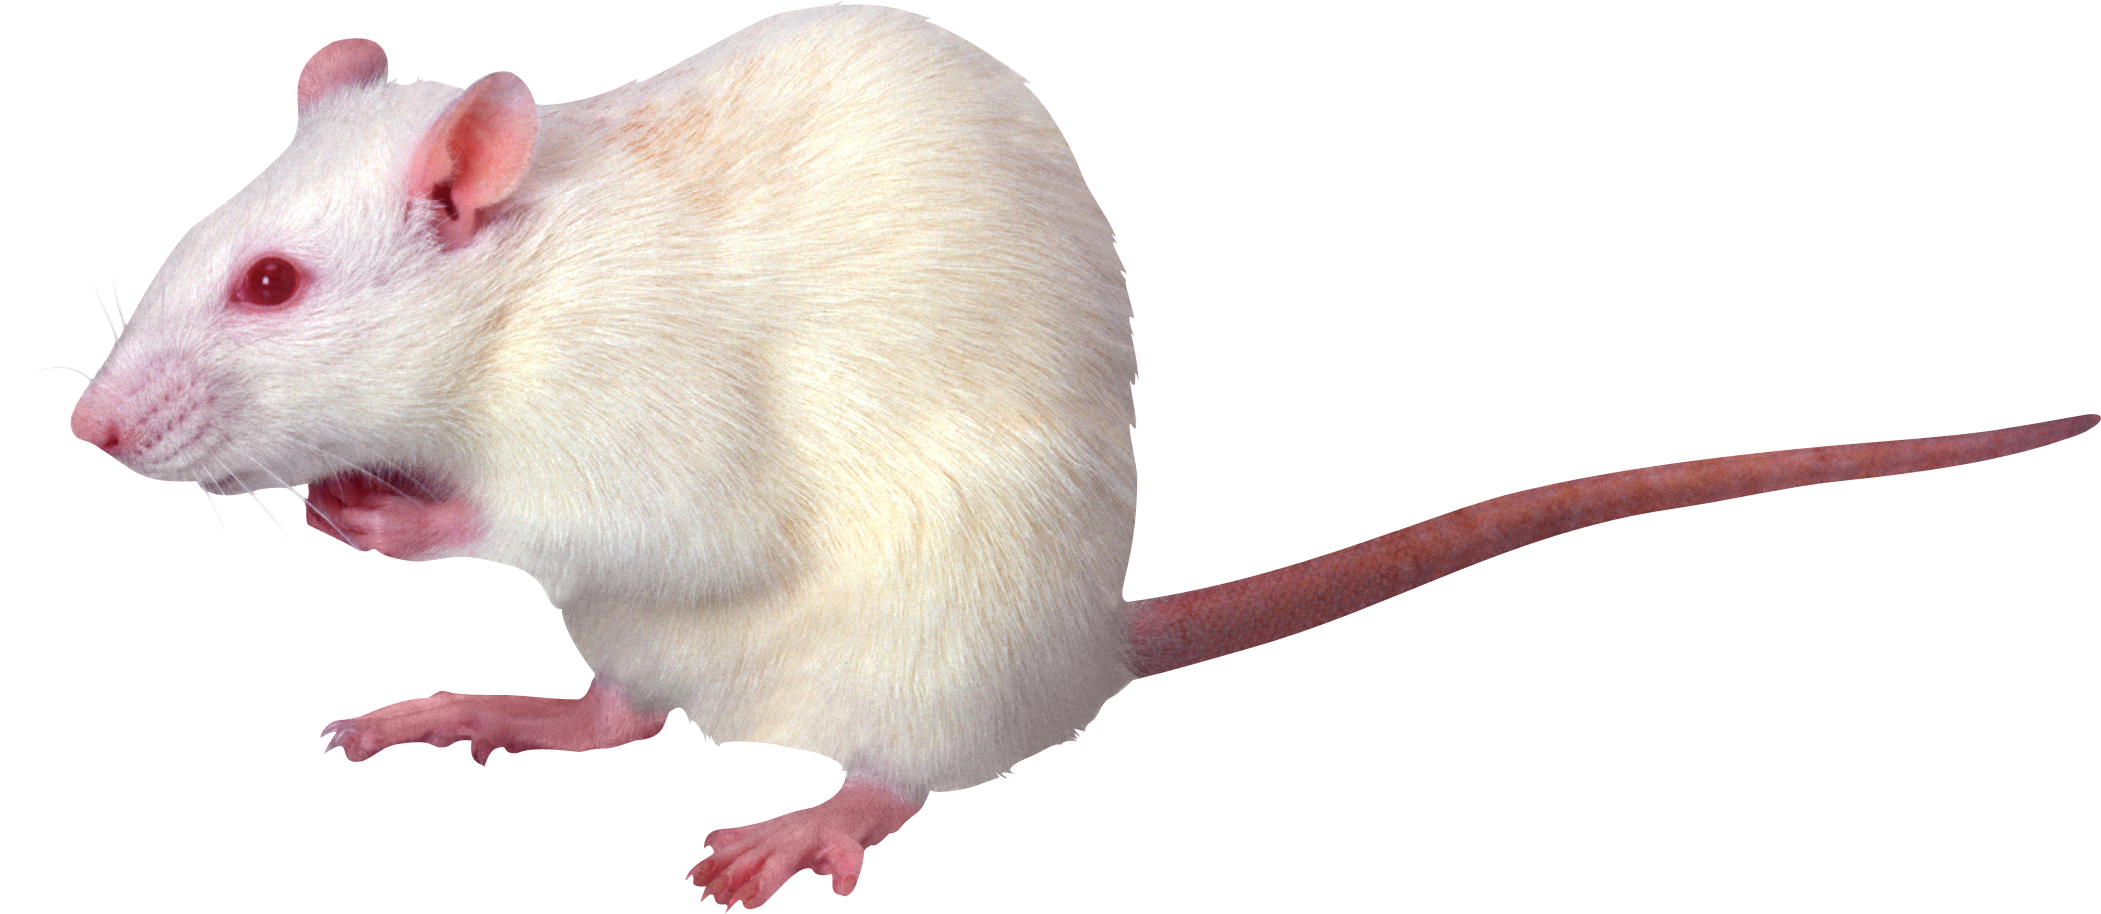 PNG Mice - 78629